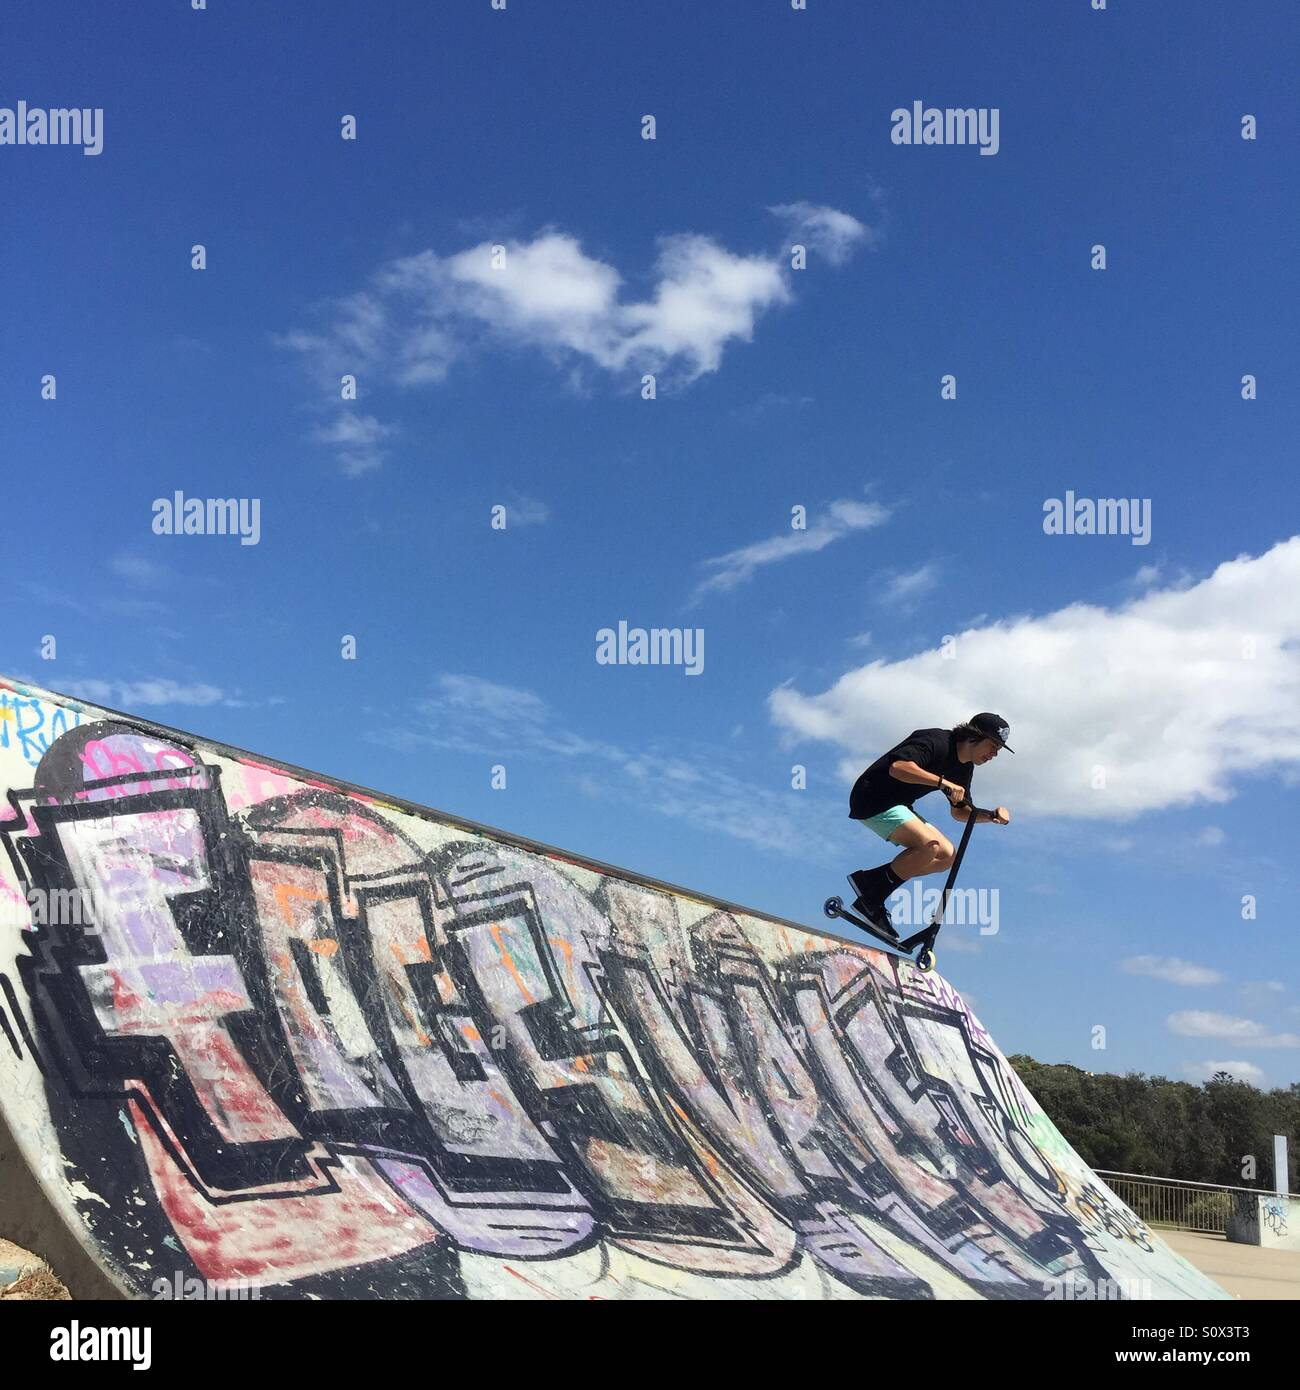 Teenager riding scooter on skate park - Stock Image